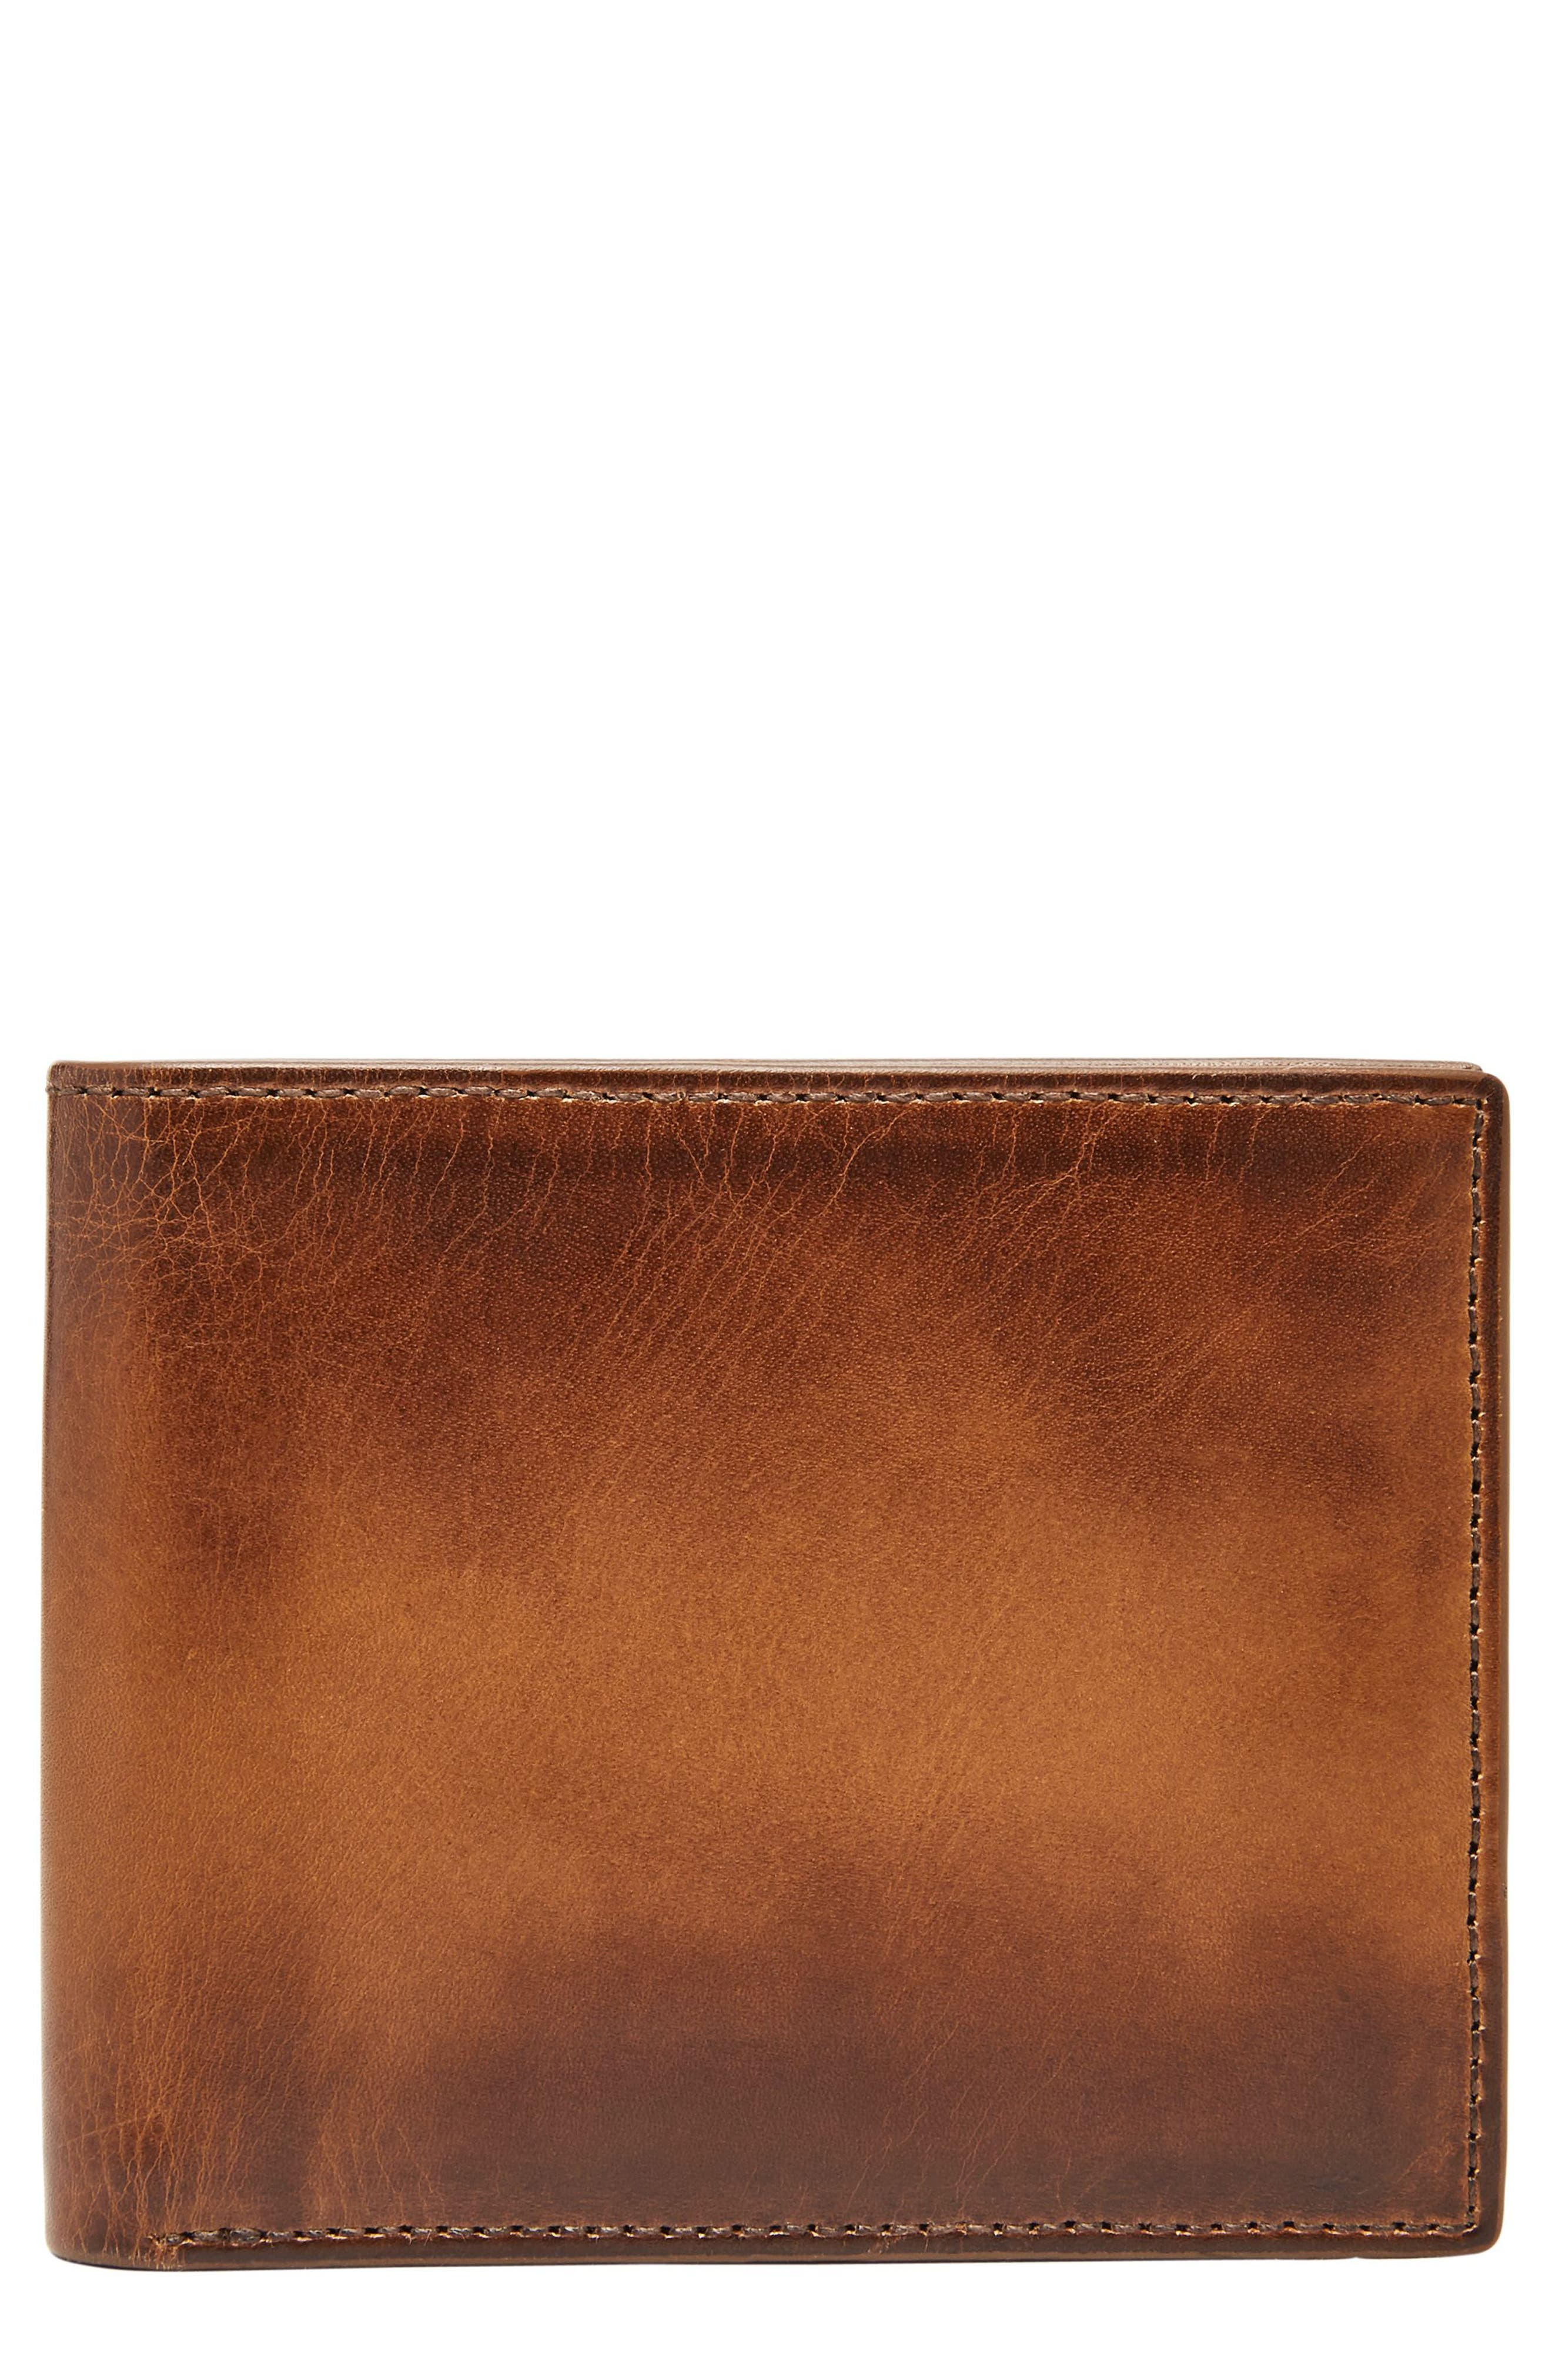 Paul Leather Wallet,                         Main,                         color, Cognac